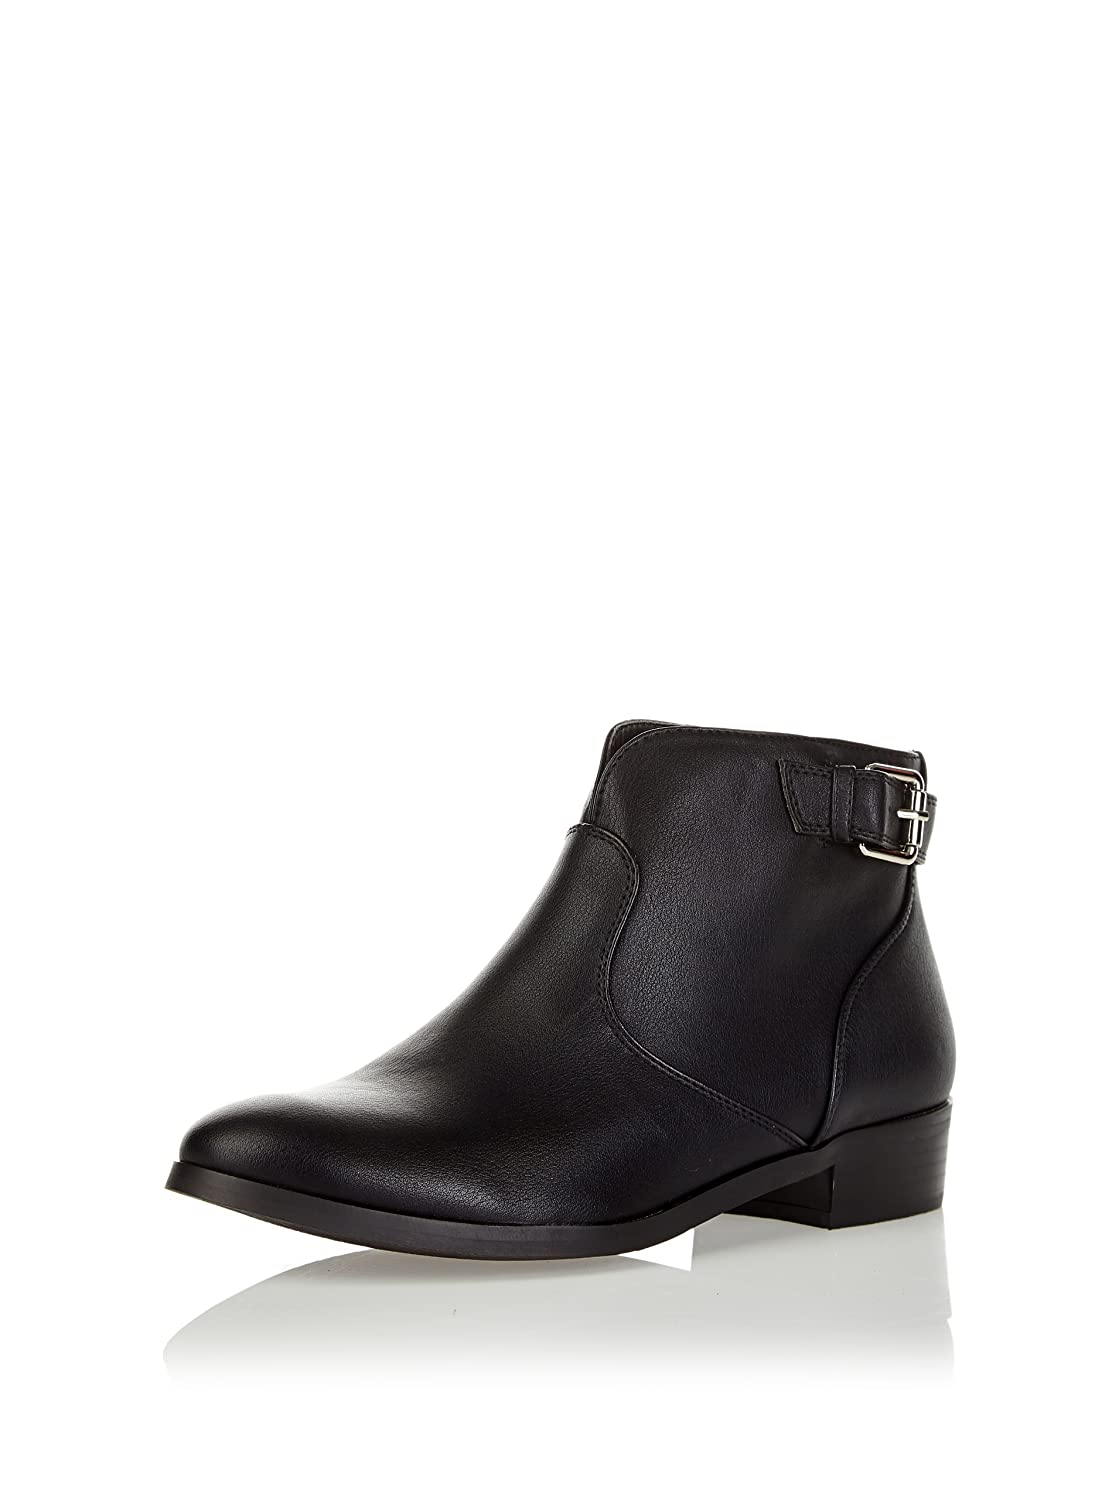 Bottines & low boots plates RAXMAX cuir noir 37